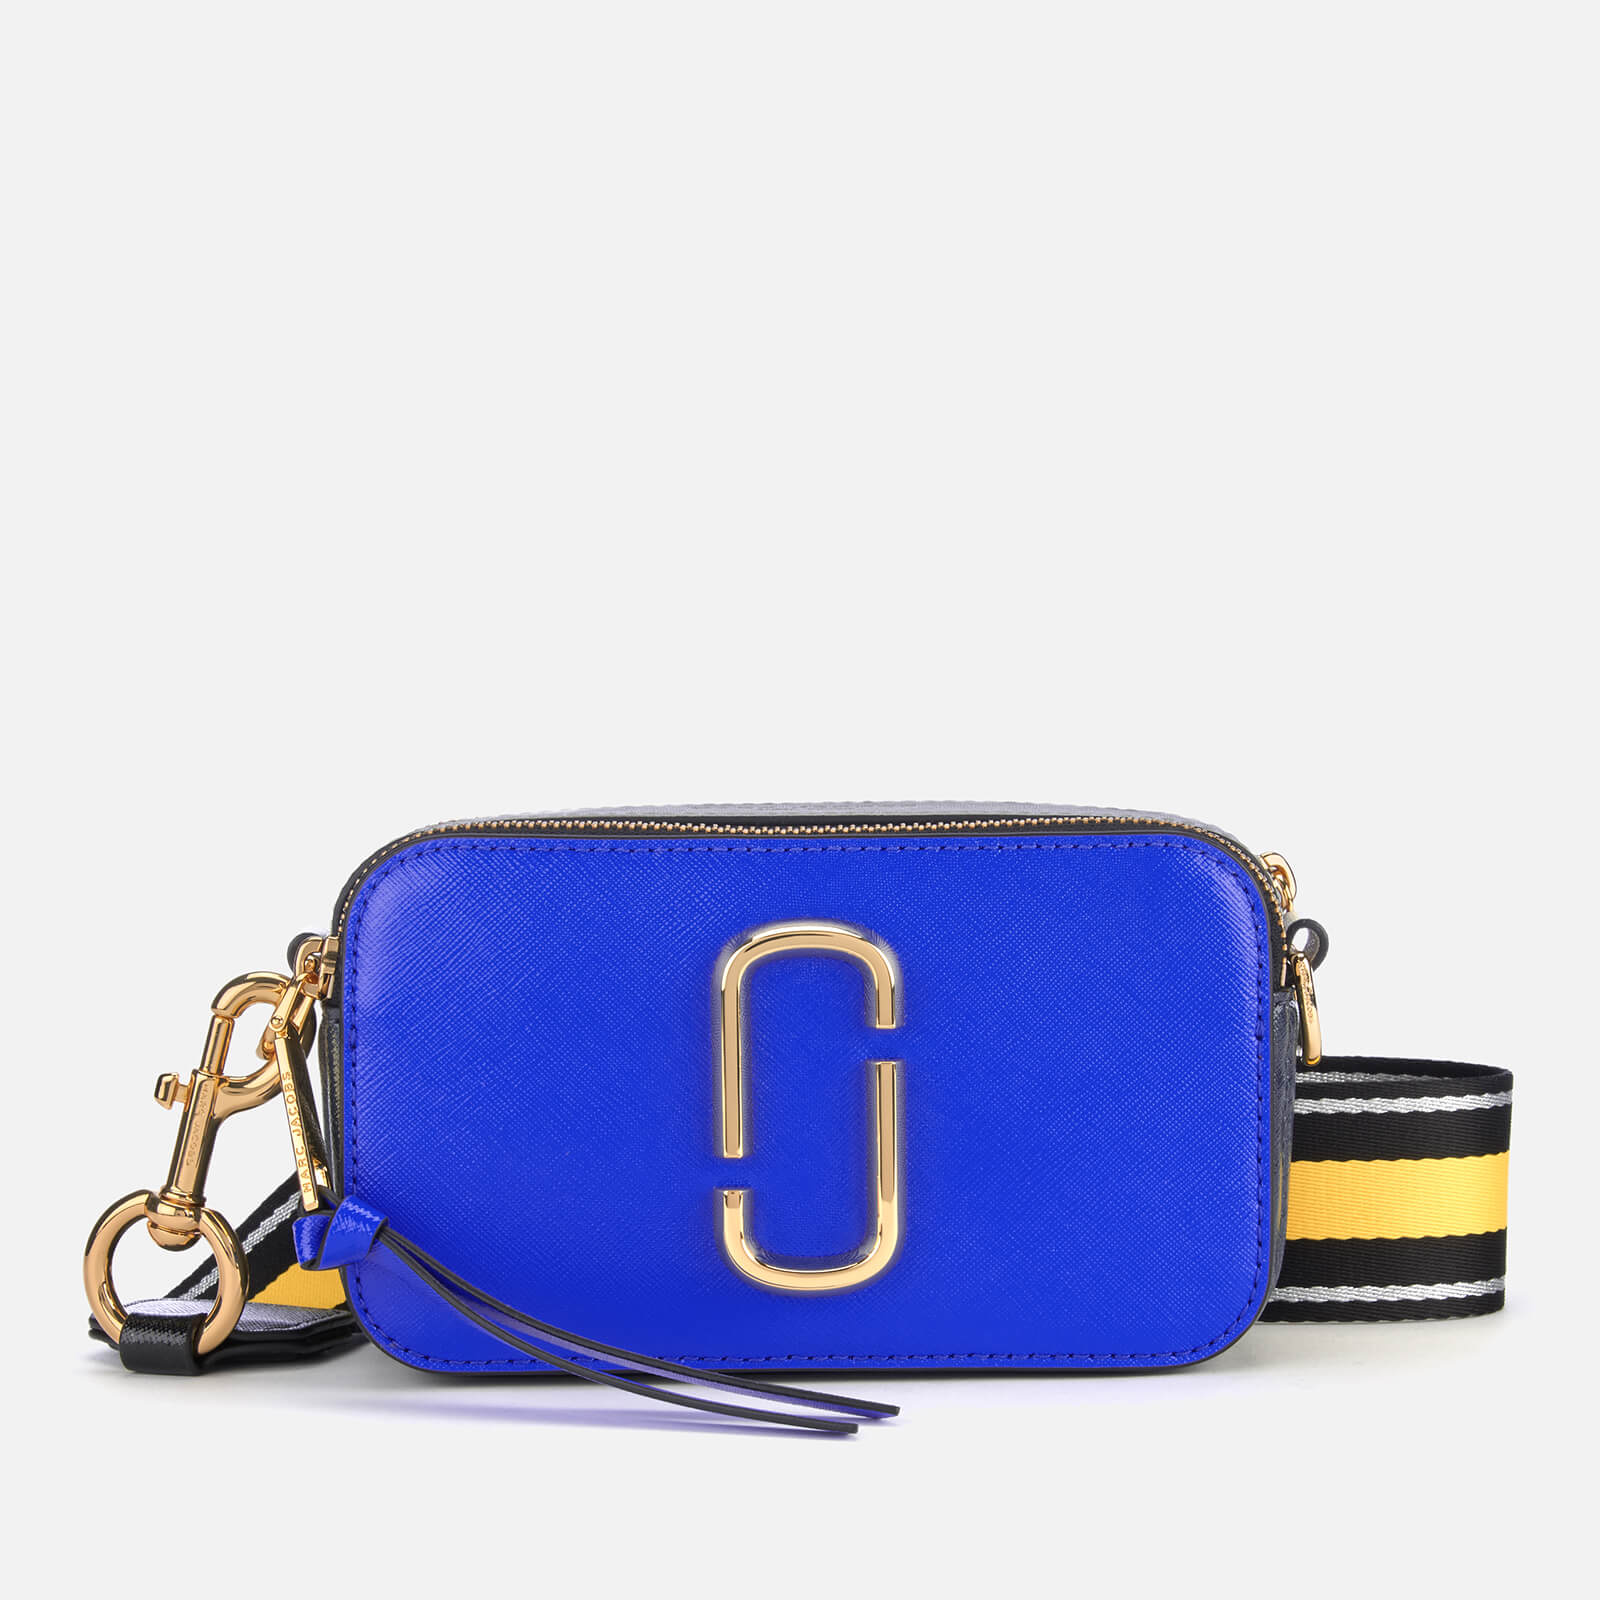 743b2302185aa Marc Jacobs Women s Snapshot Cross Body Bag - Dazzling Blue Multi - Free UK  Delivery over £50